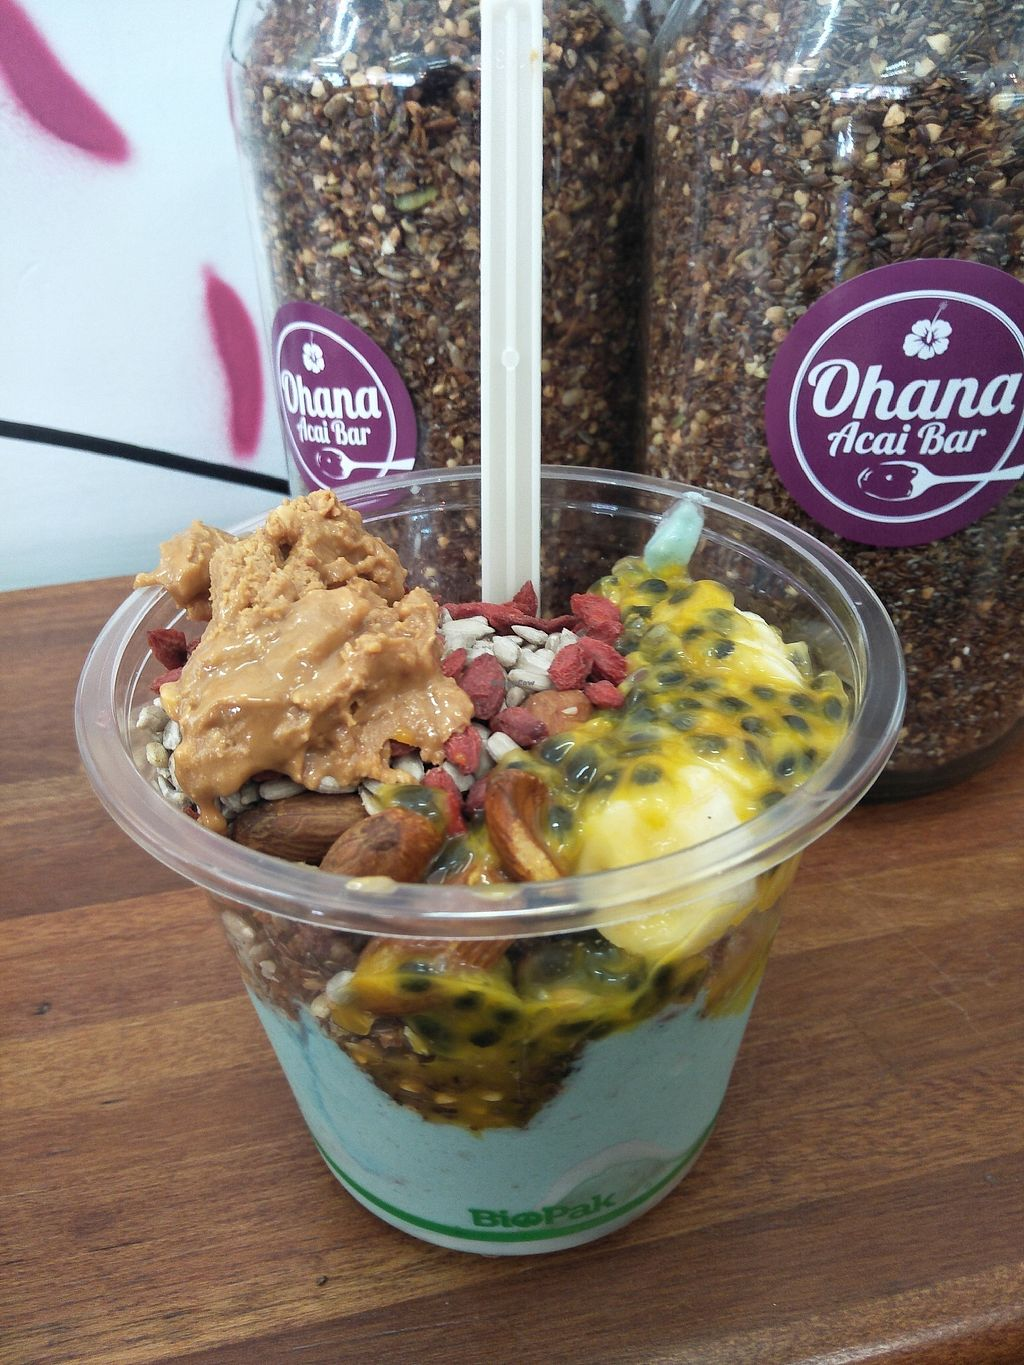 """Photo of Ohana Acai Bar  by <a href=""""/members/profile/Cynthia1998"""">Cynthia1998</a> <br/>Ocean bowl <br/> January 16, 2018  - <a href='/contact/abuse/image/106285/347139'>Report</a>"""